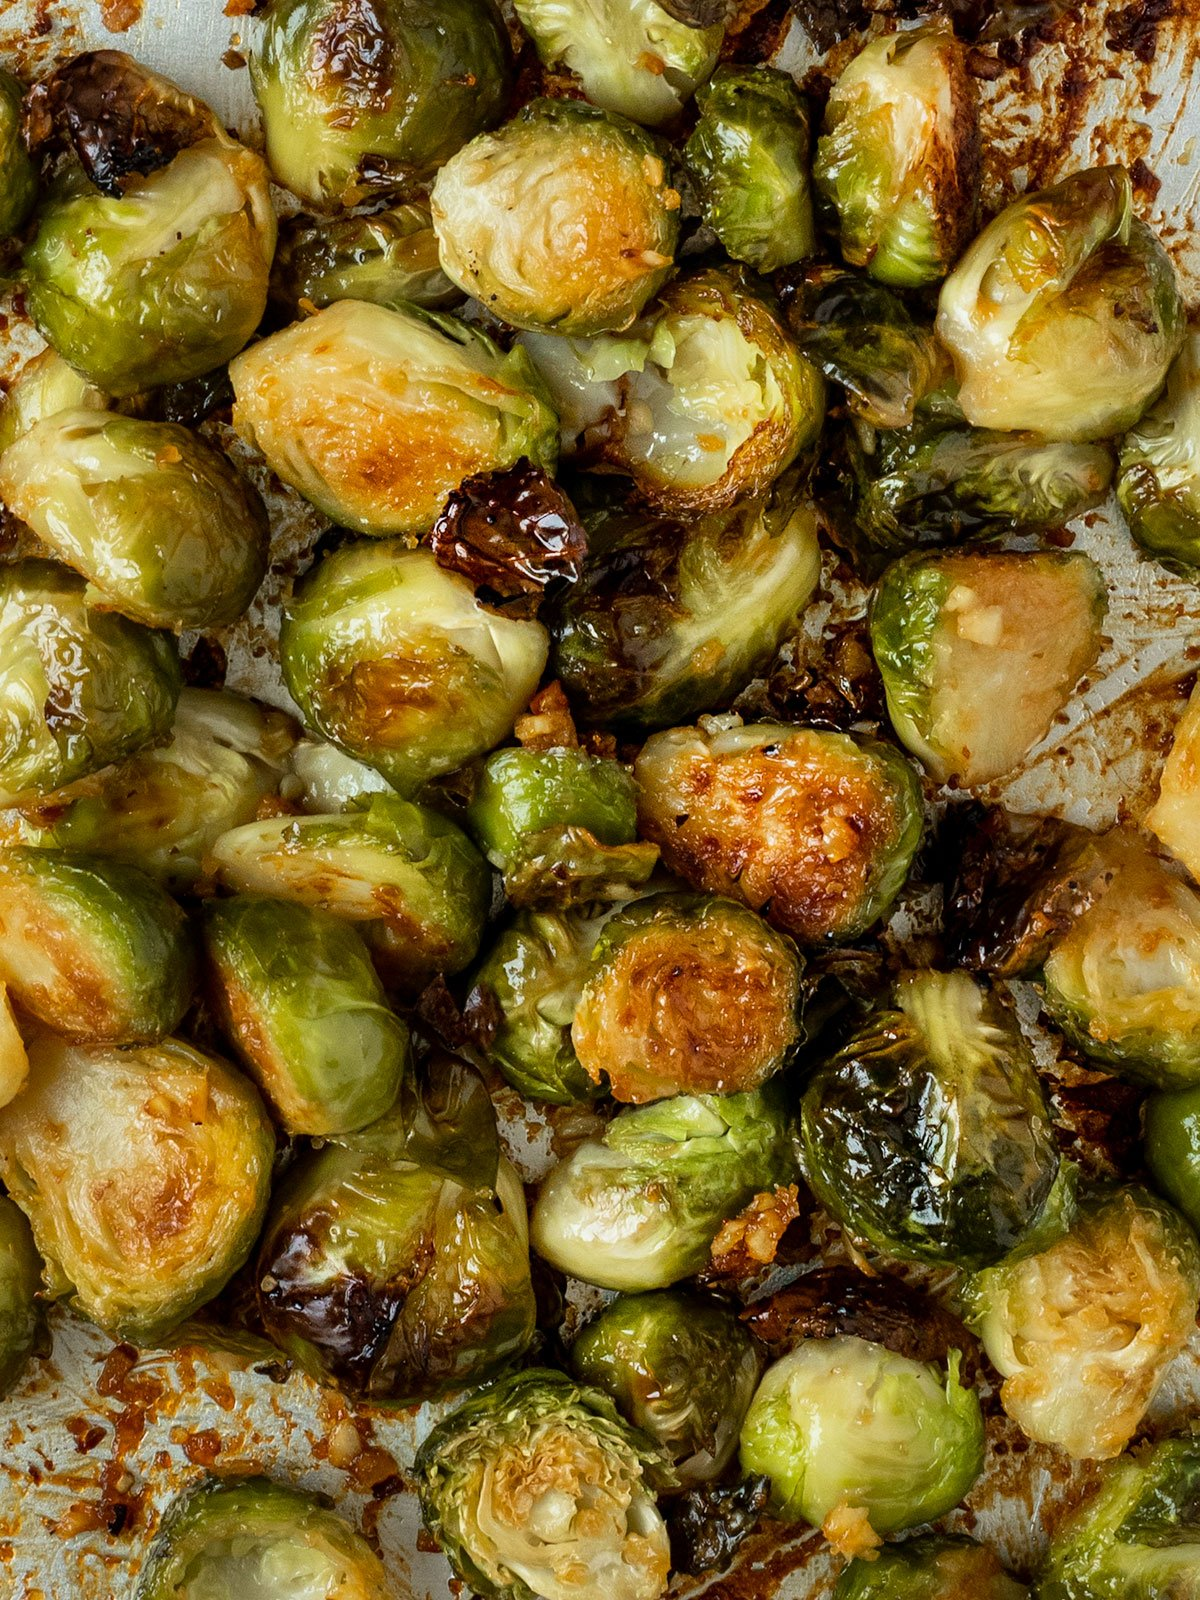 close up shot of roasted brussel sprouts that are charred on the edges